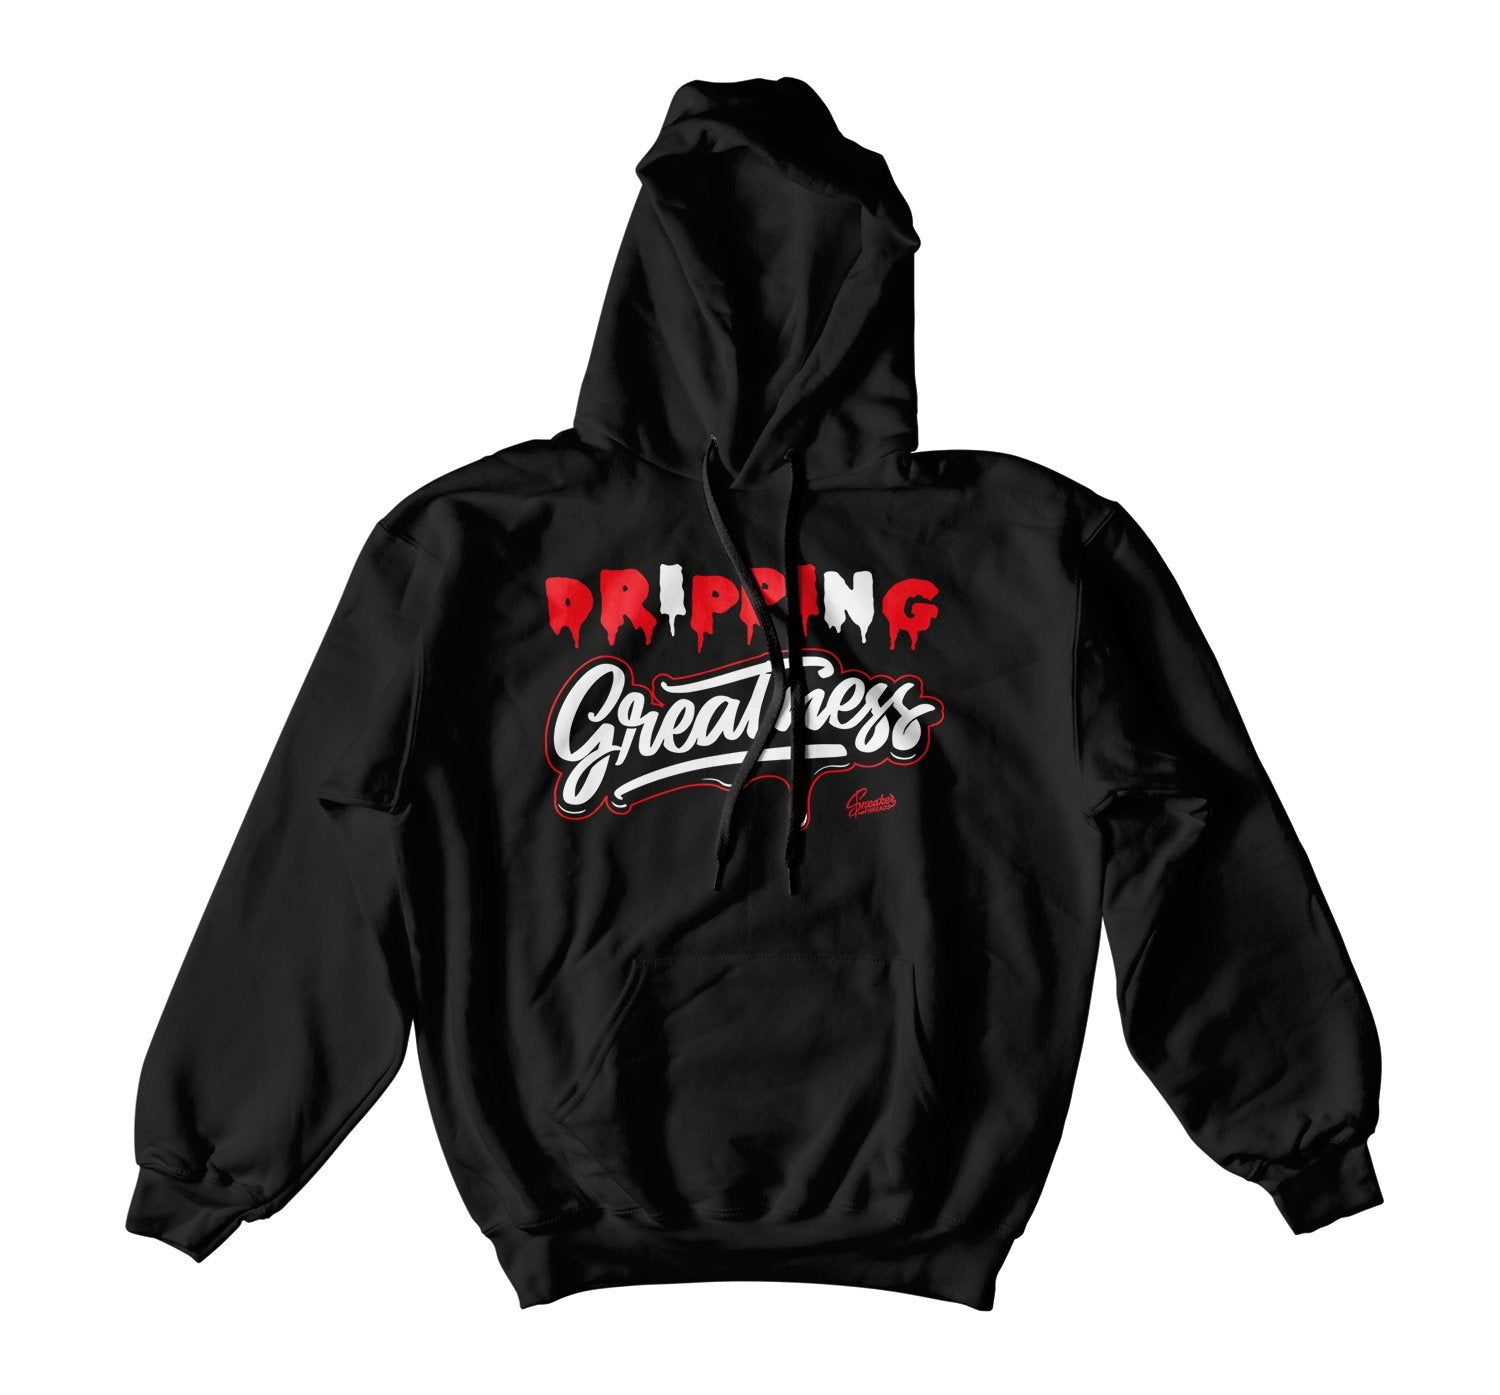 bred 11 Jordan sneaker collection matching hoodies created to match